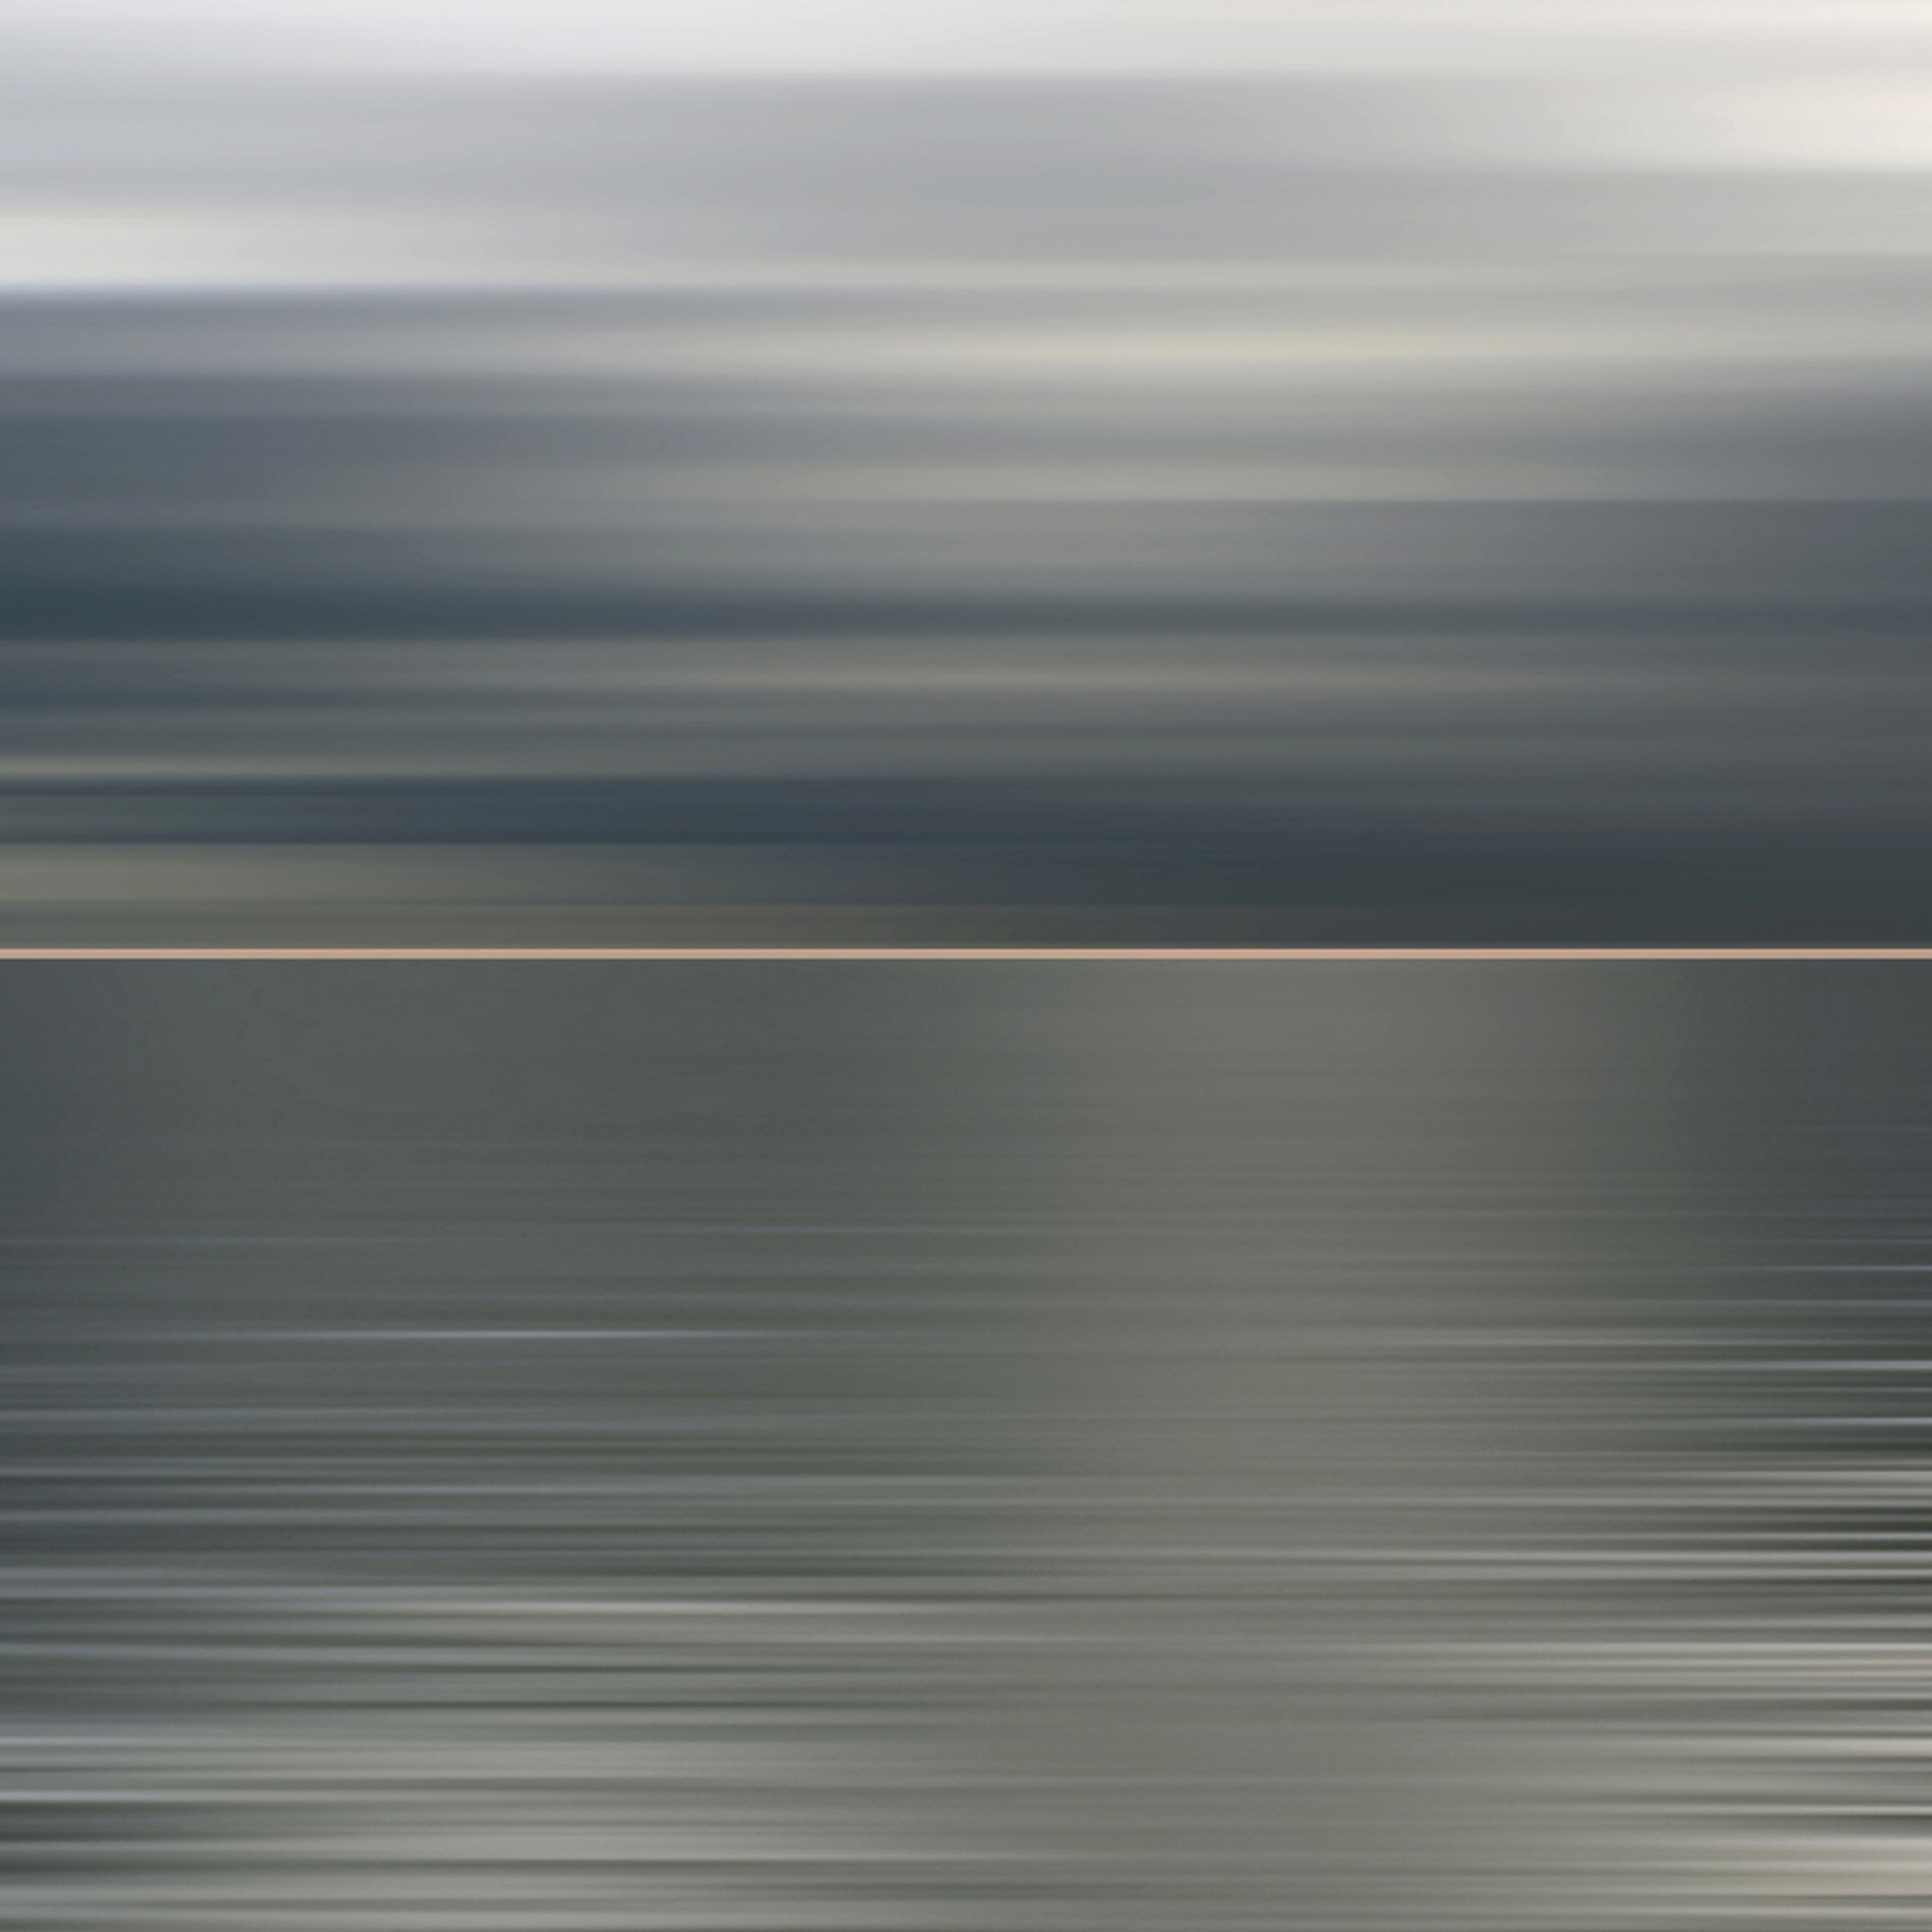 Light and Sea Pink Horizon, 2018, photograph on plexiglass, 40 x 40 in, edition of 10,  $ 7,500 (other sizes available, priced accordingly)